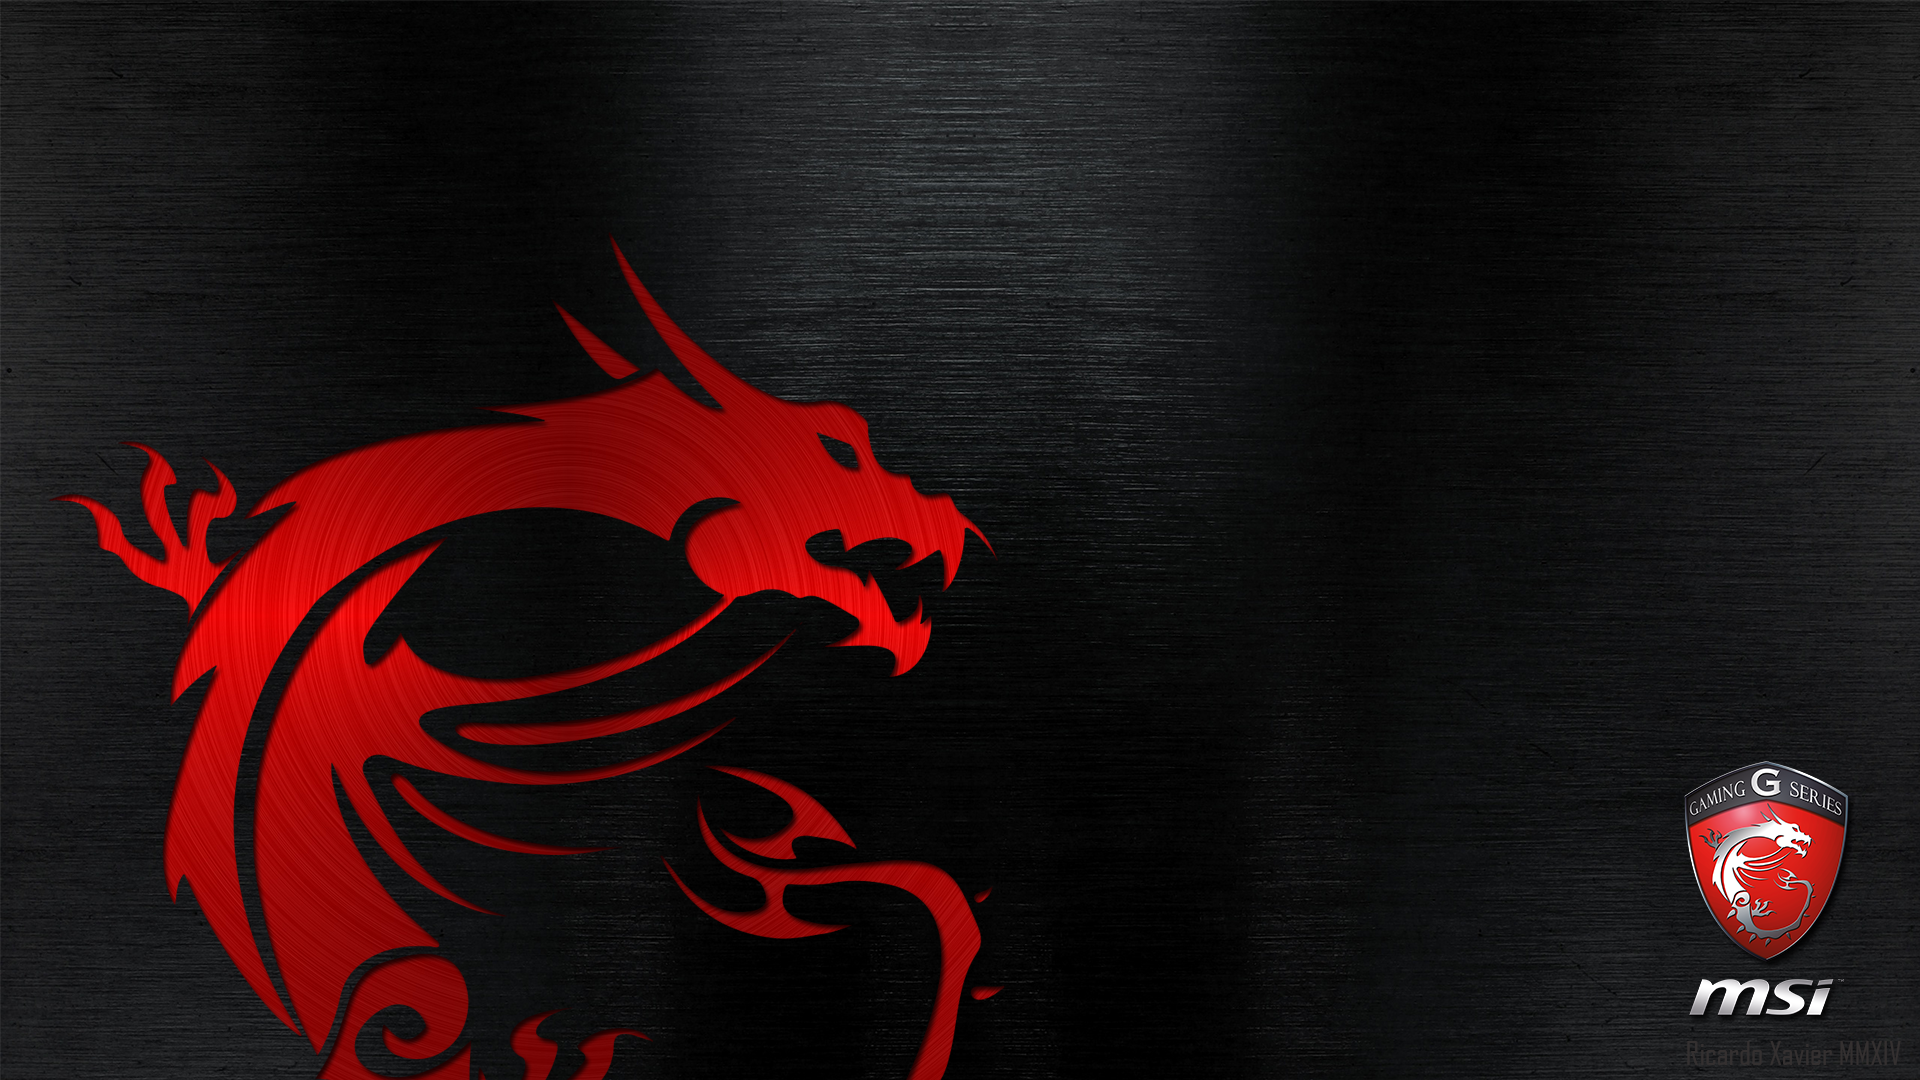 Msi gaming wallpaper red dragon emobossed 19201080 msi msi gaming wallpaper red dragon emobossed 19201080 voltagebd Gallery